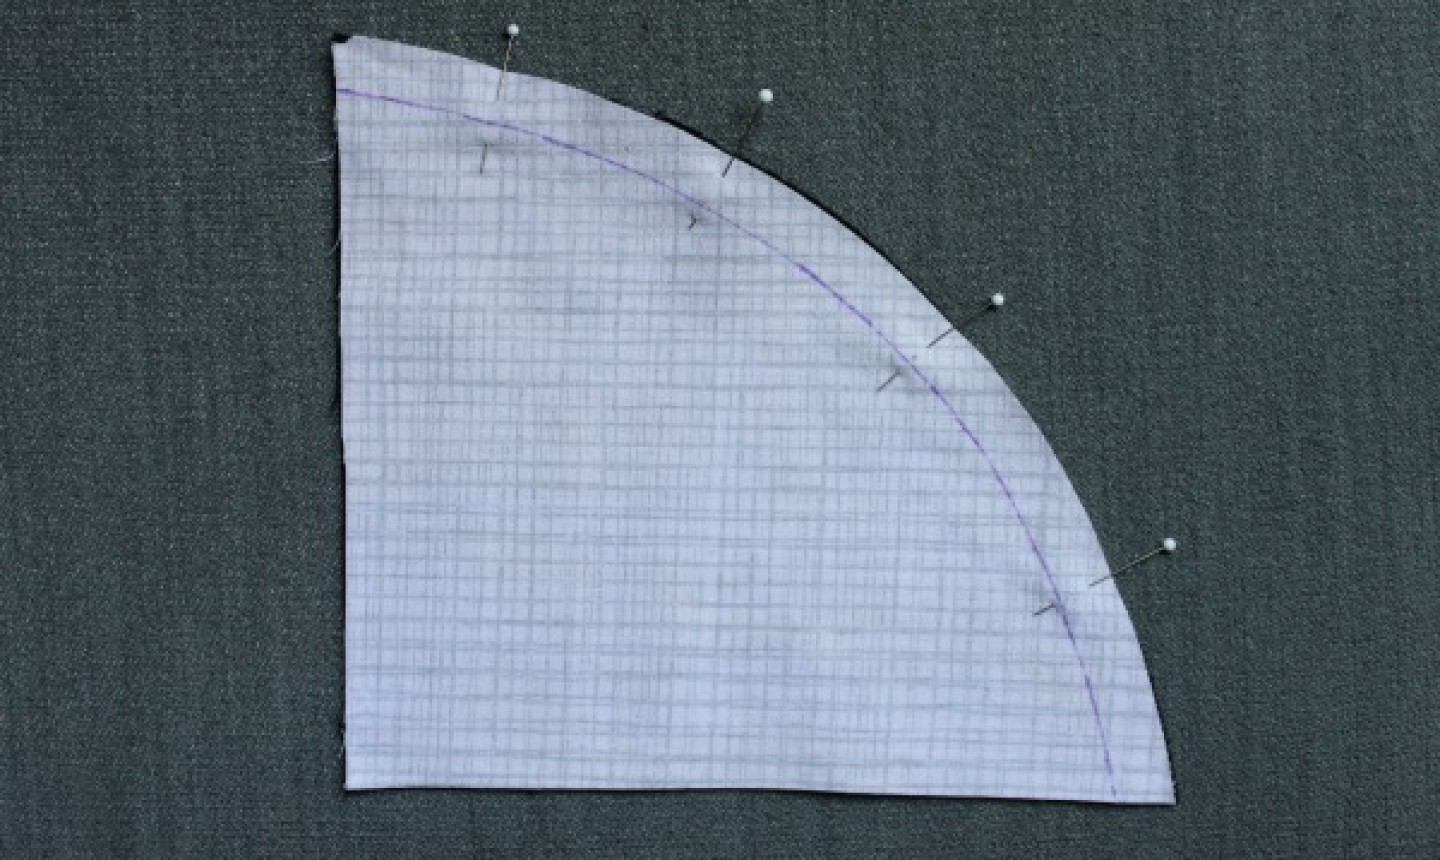 curved pattern piece on fabric